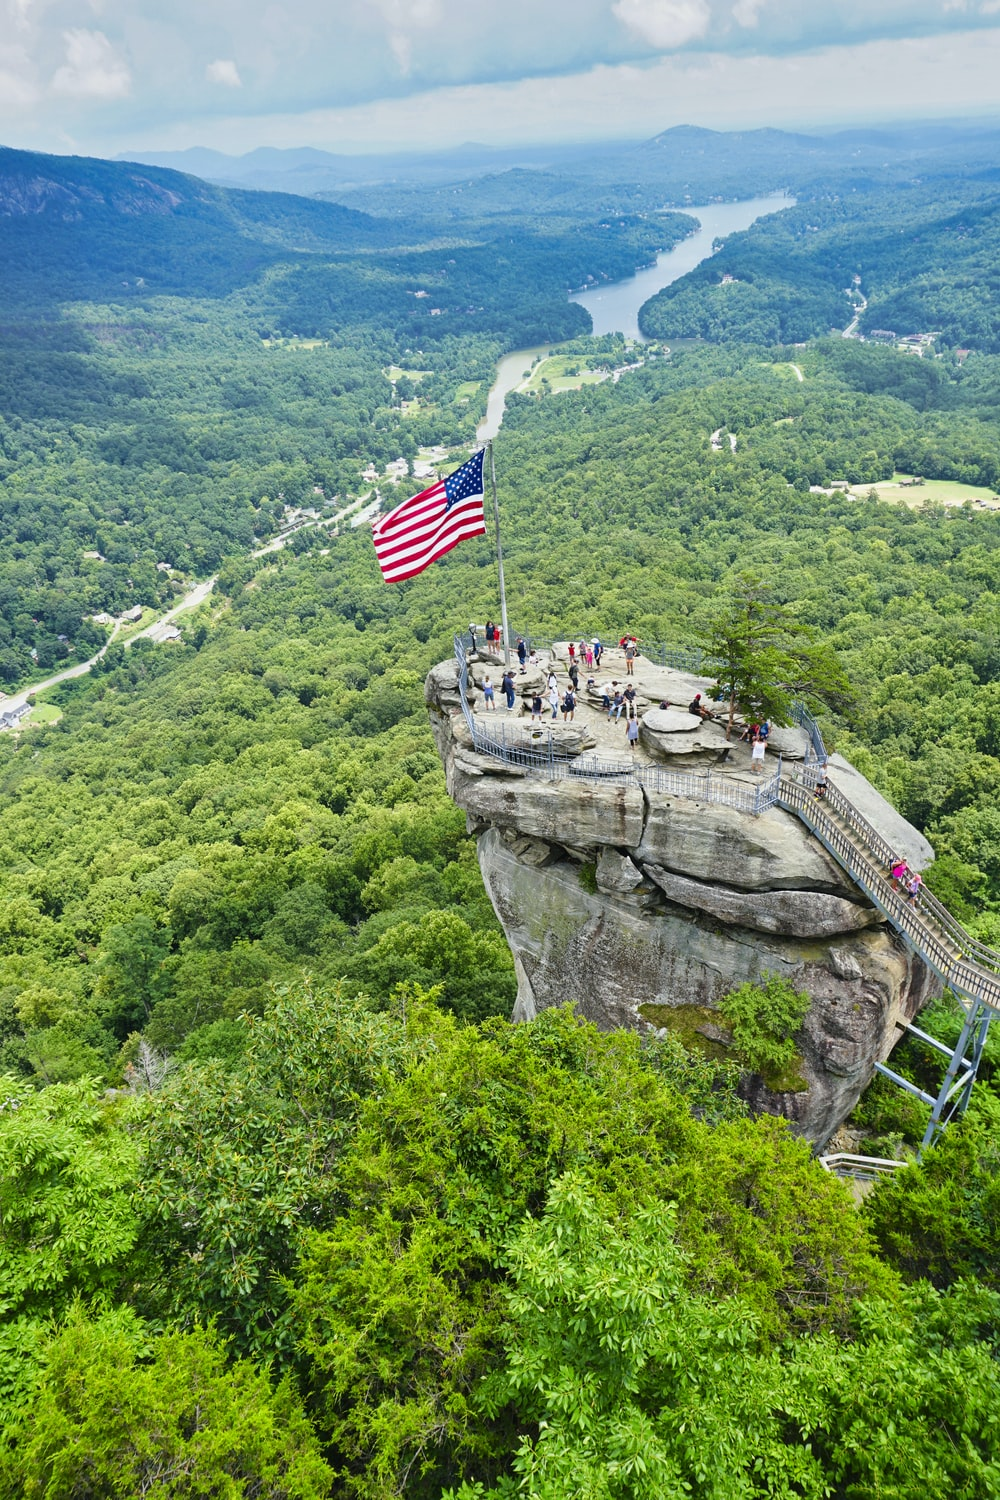 us a flag on top of rock formation